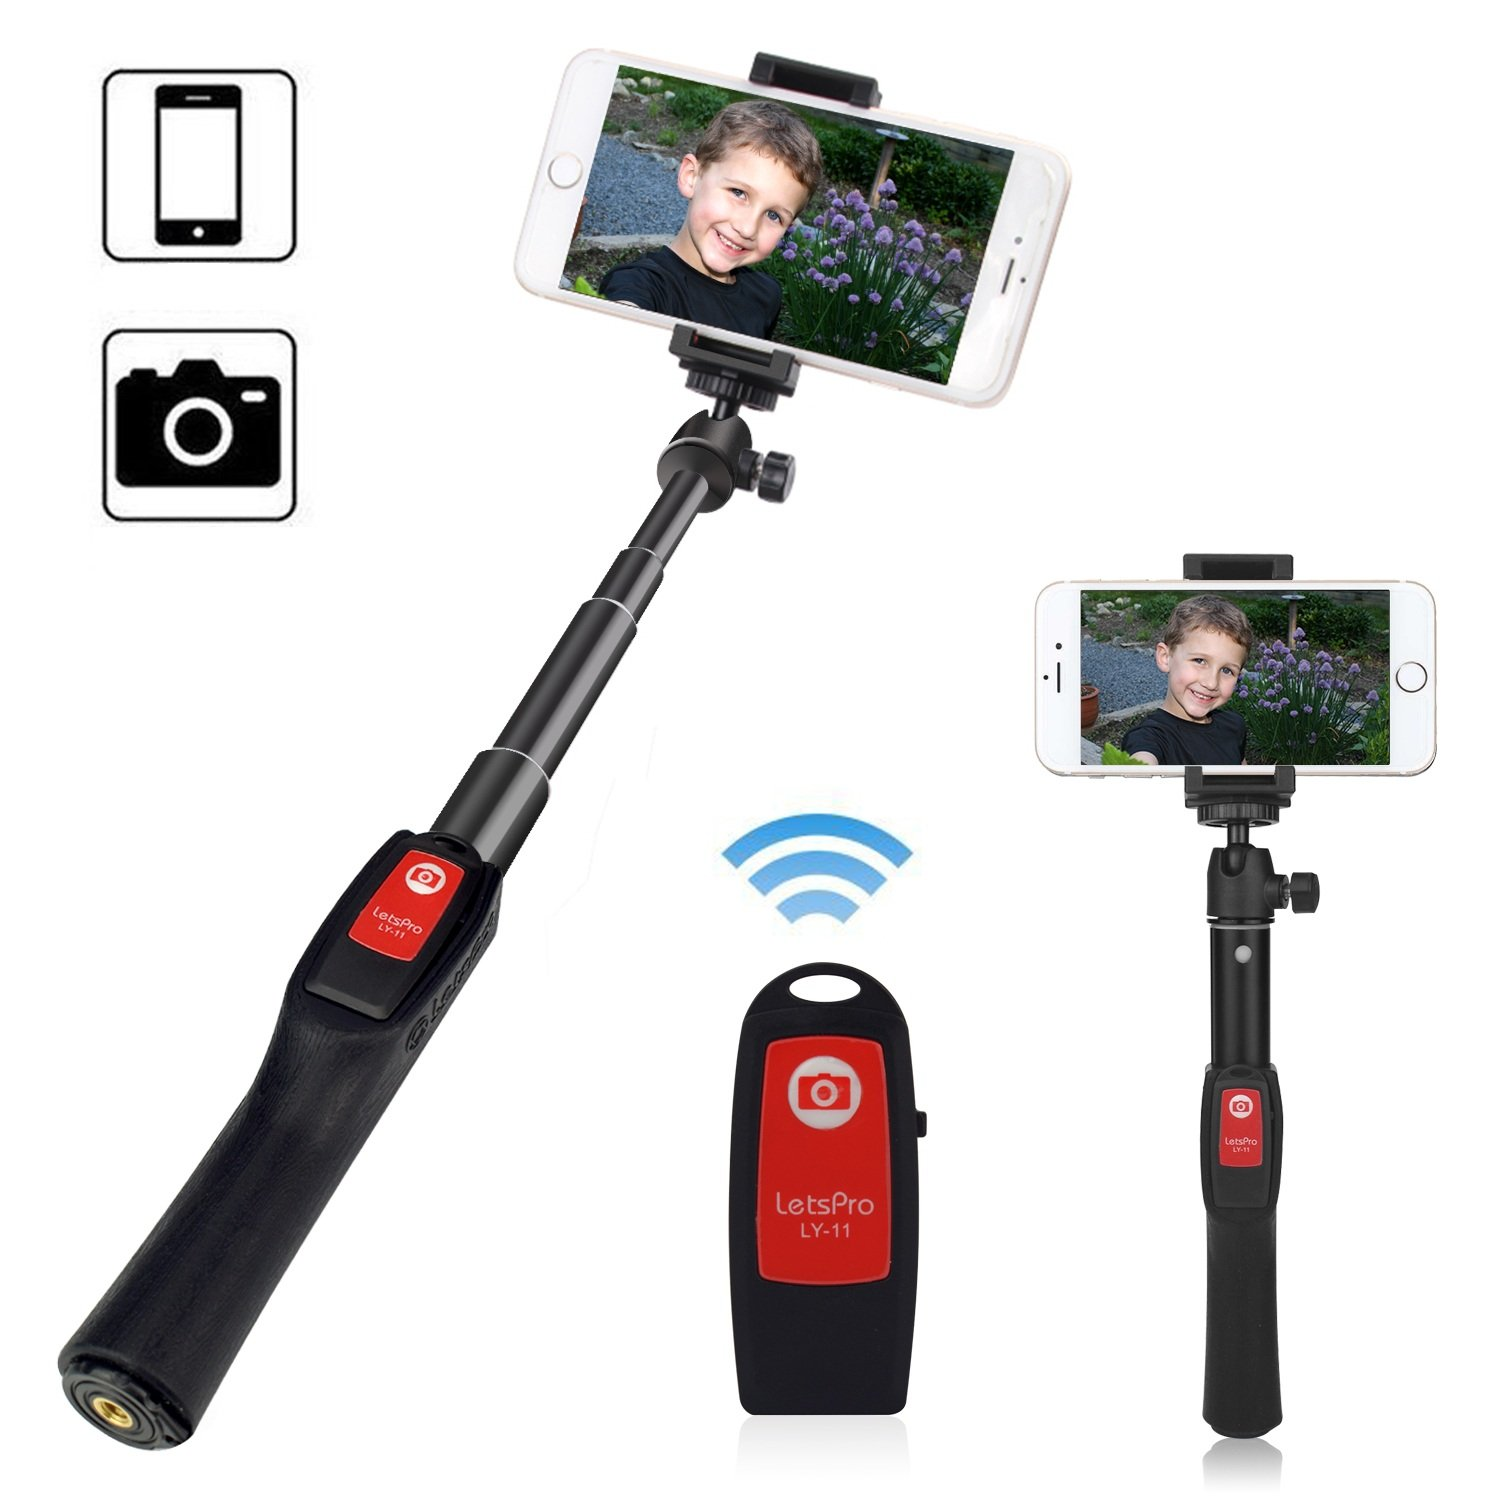 AZFUNN Cellphone Selfie Stick, Handheld Telescopic Monopod with Rechargeable Bluetooth Remote & Phone Clamp for iPhone8/7/6/6Plus, Samsung S8/S7, Gopro Hero 5, more Smartphone Action Camera (BLACK)